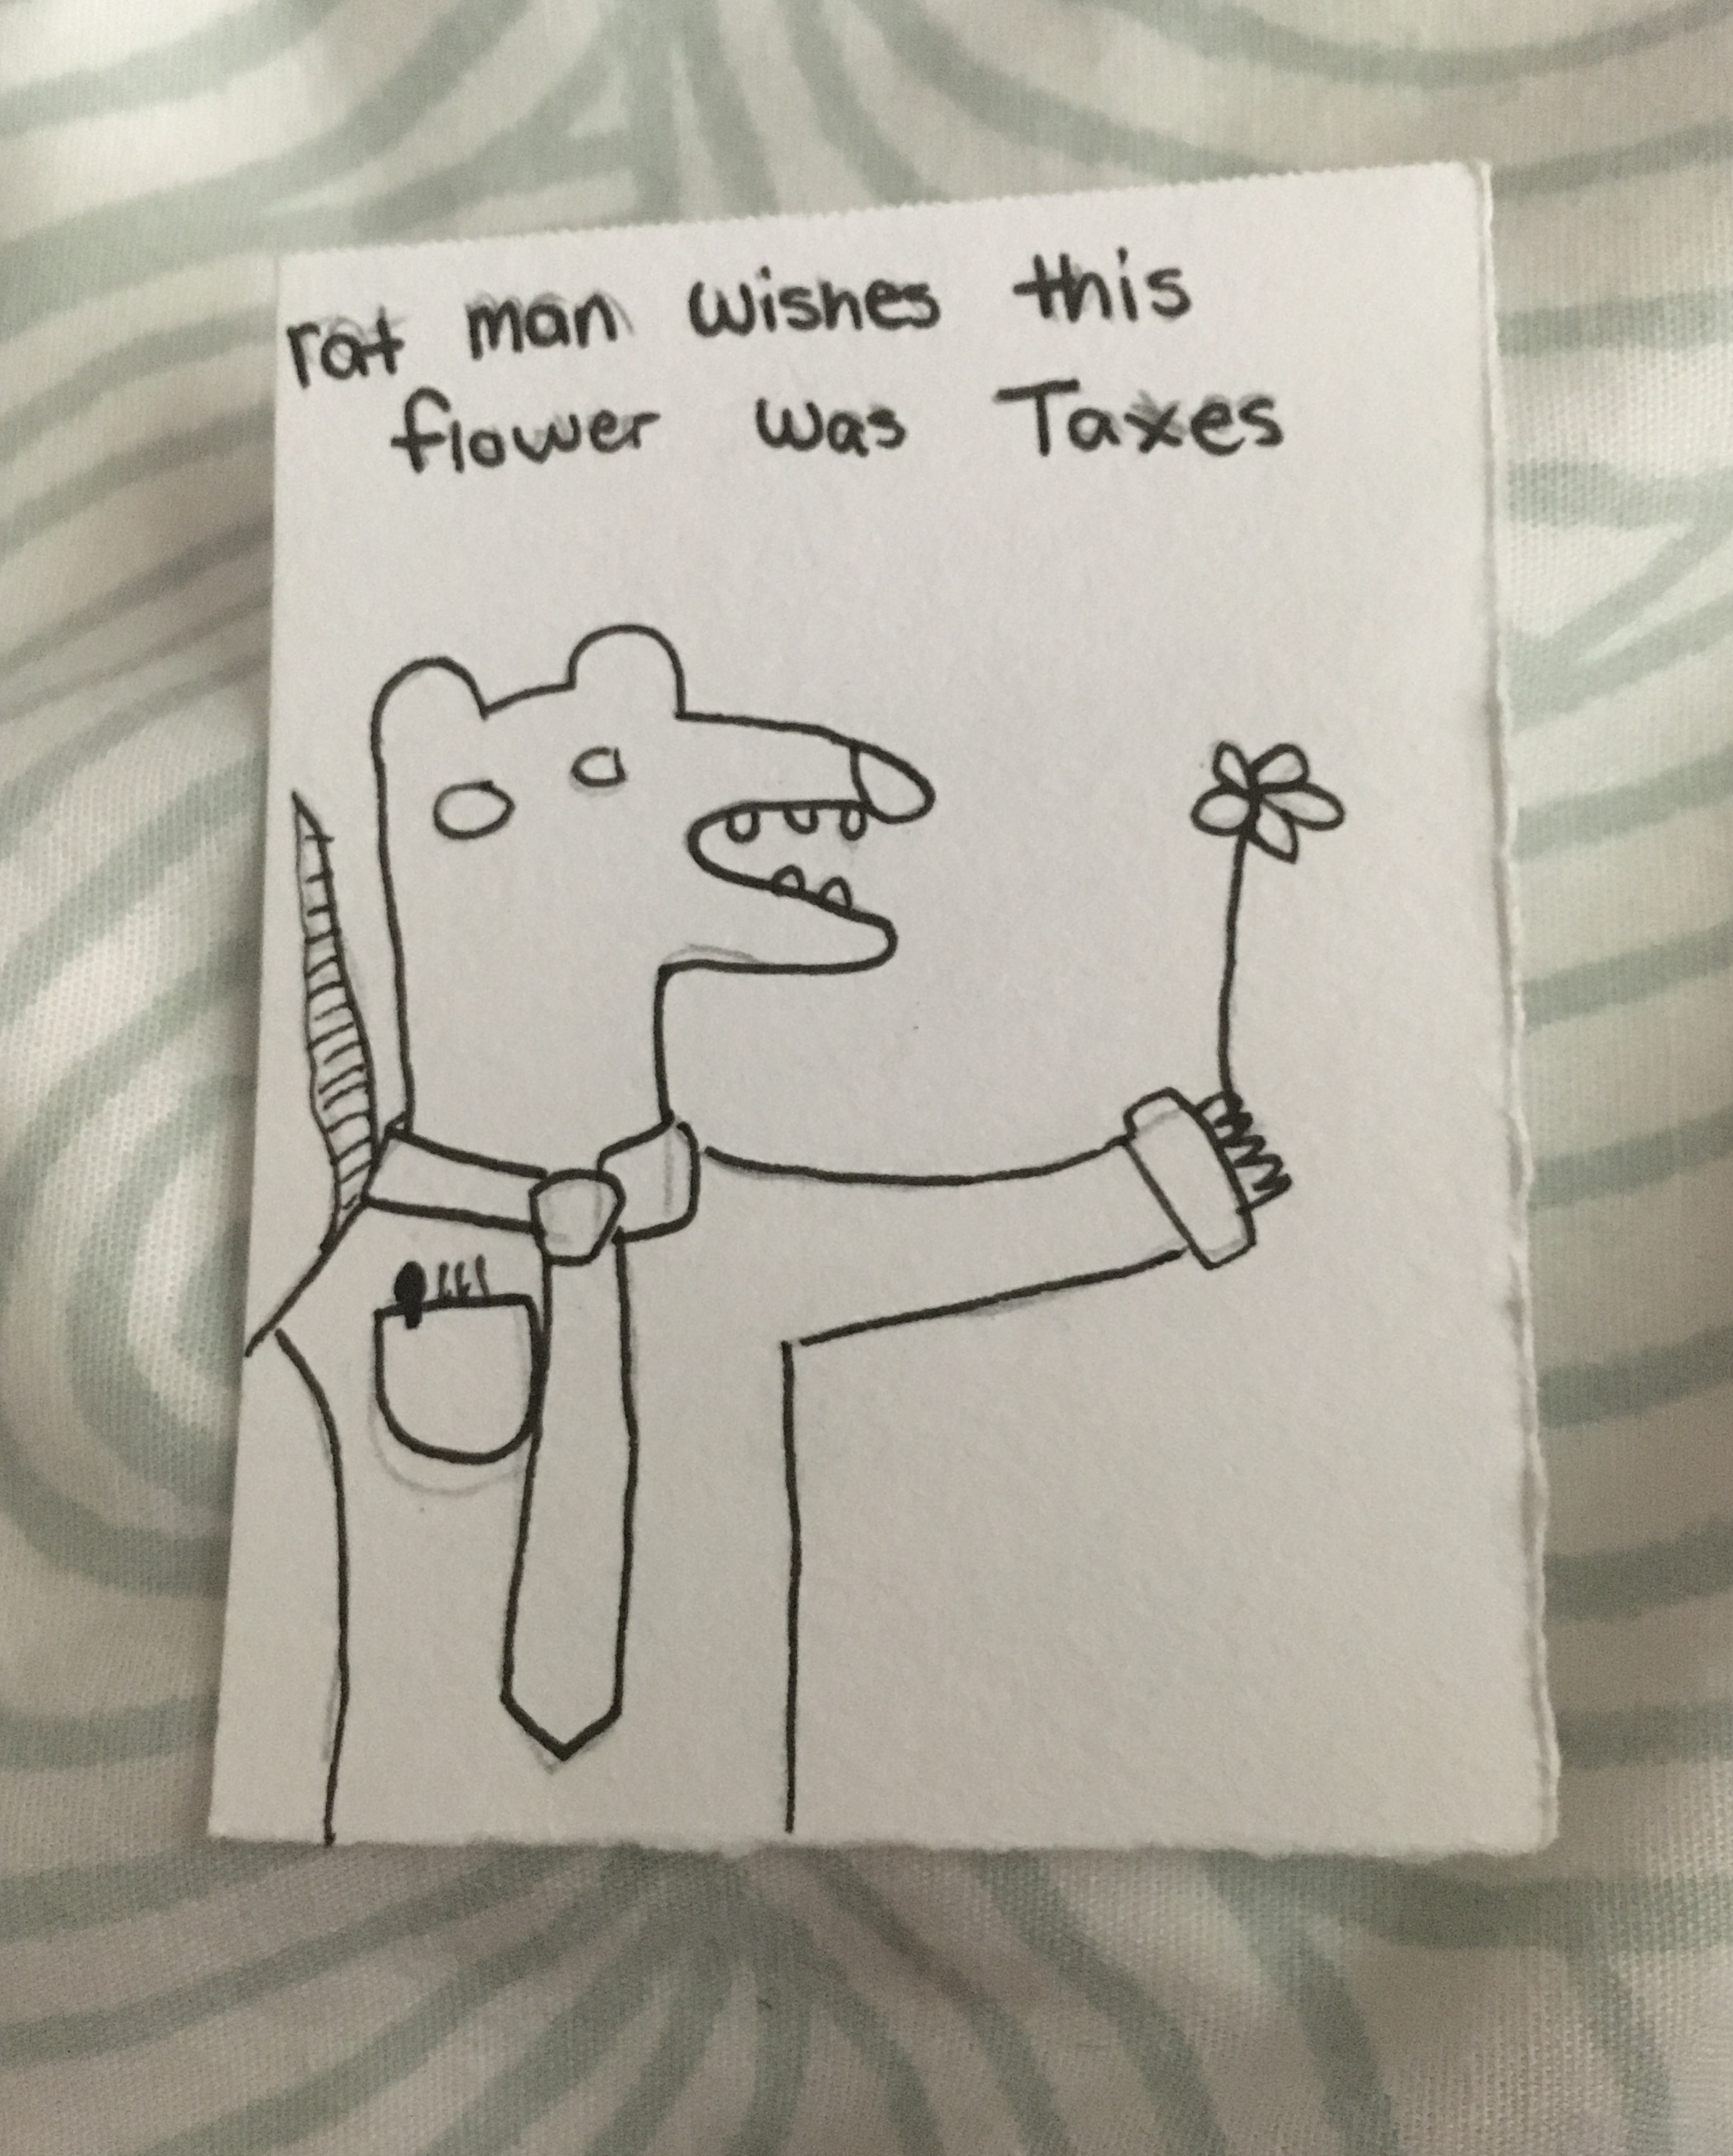 RatMan wishes this flower was taxes